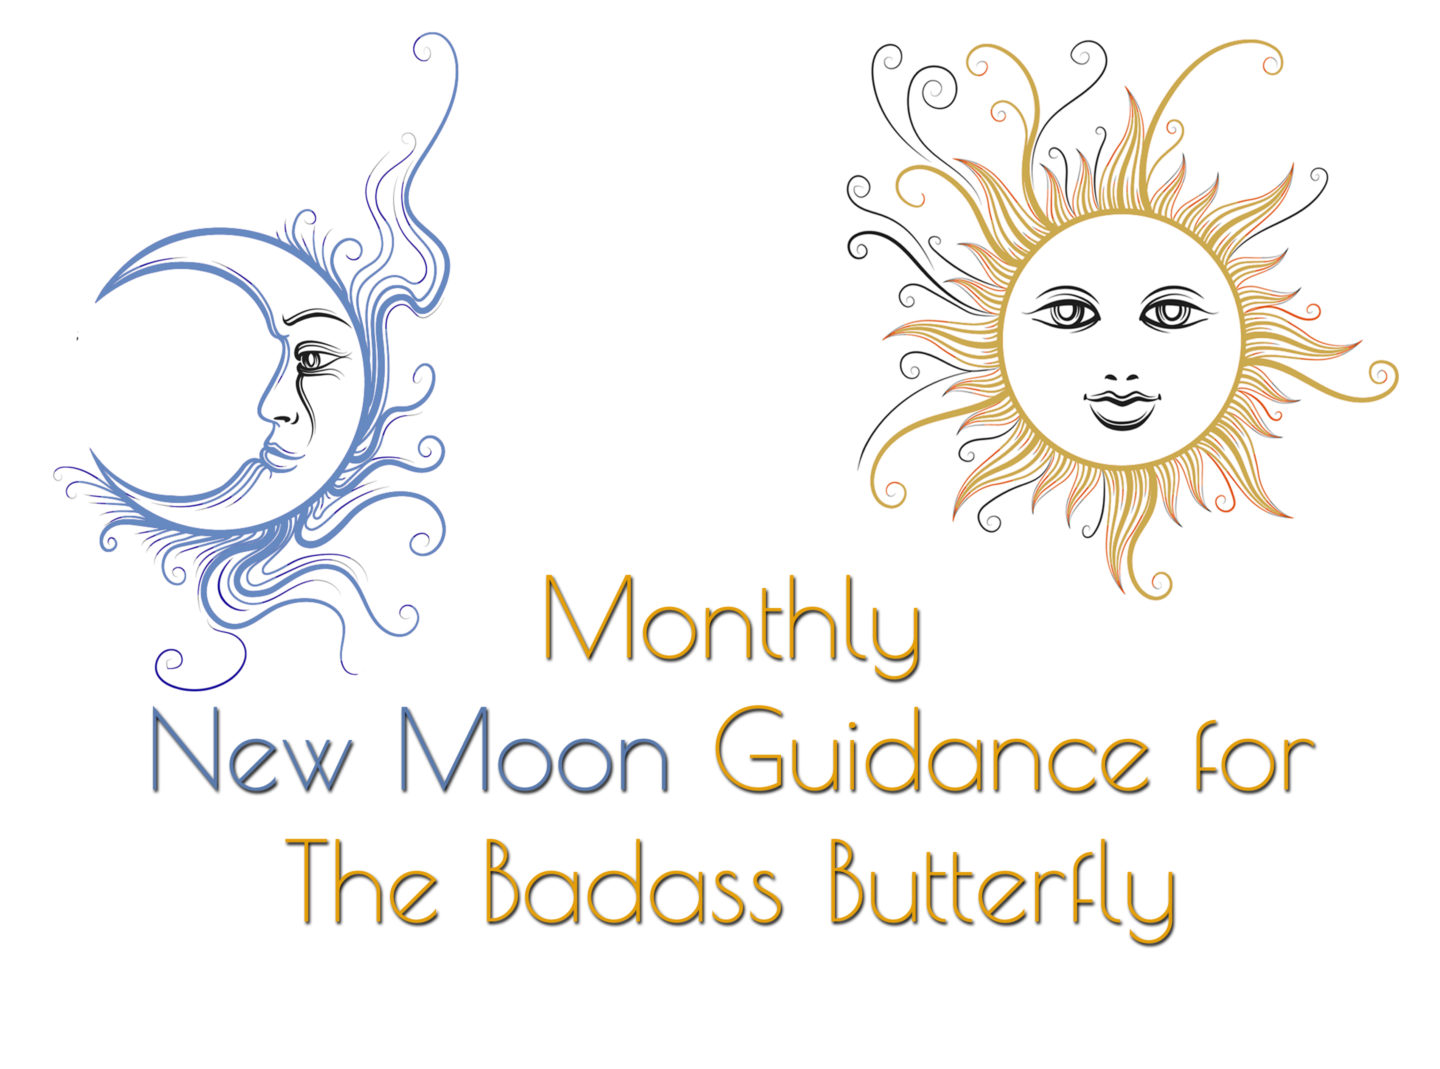 New Moon Guidance for the Badass Butterfly